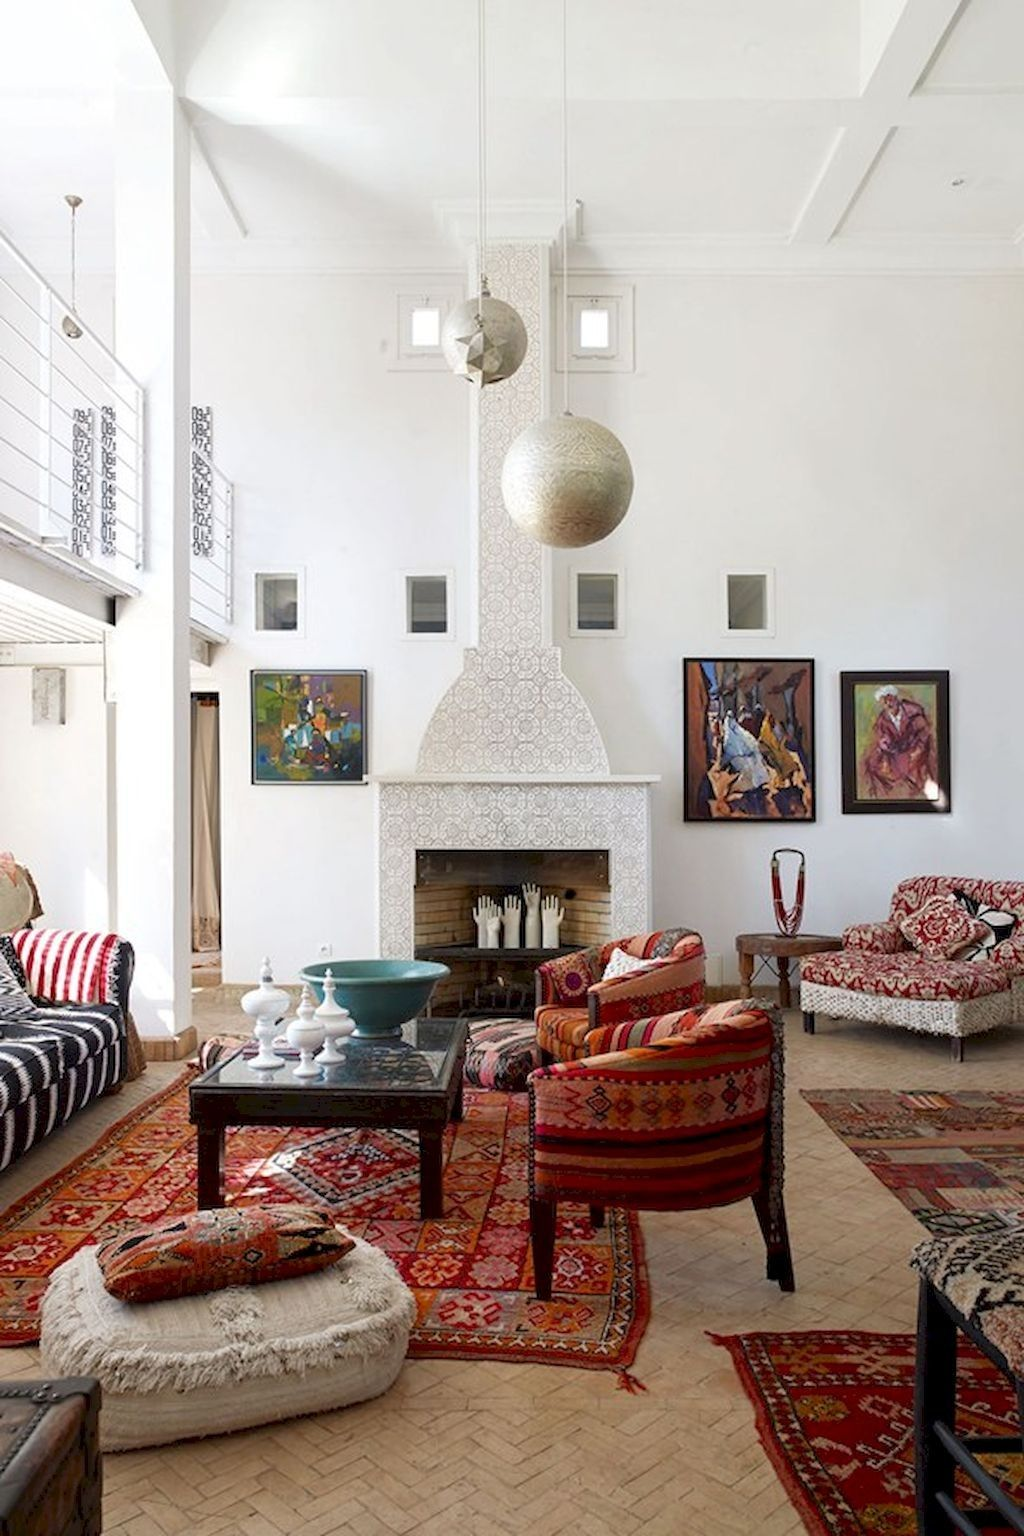 50+ Fascinating Moroccan Vibe Style Living Room for Relaxing images